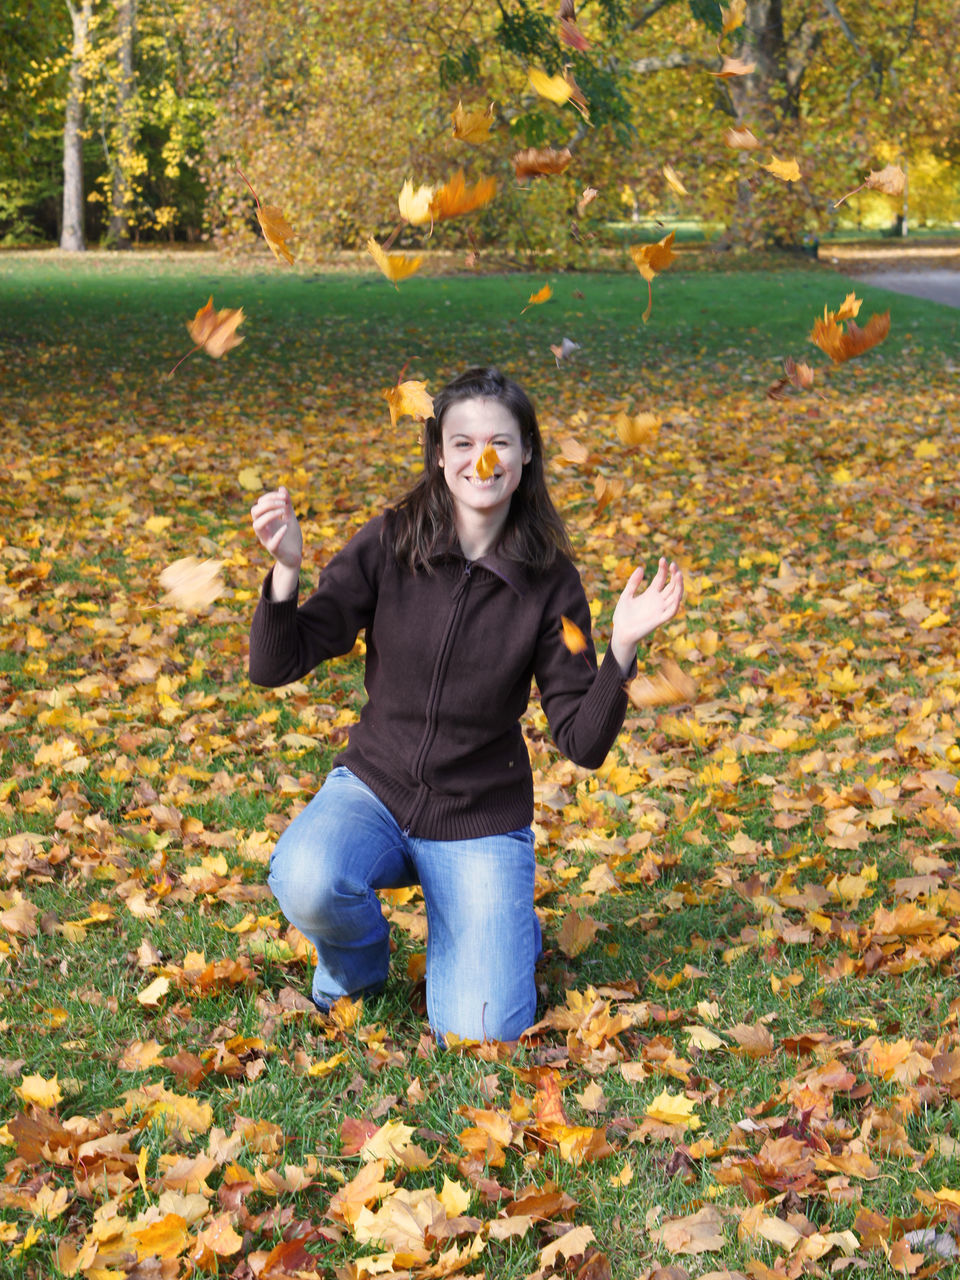 autumn, leaf, looking at camera, change, portrait, front view, standing, outdoors, one person, day, young women, nature, young adult, full length, leisure activity, real people, lifestyles, smiling, tree, happiness, one young woman only, one woman only, adult, people, adults only